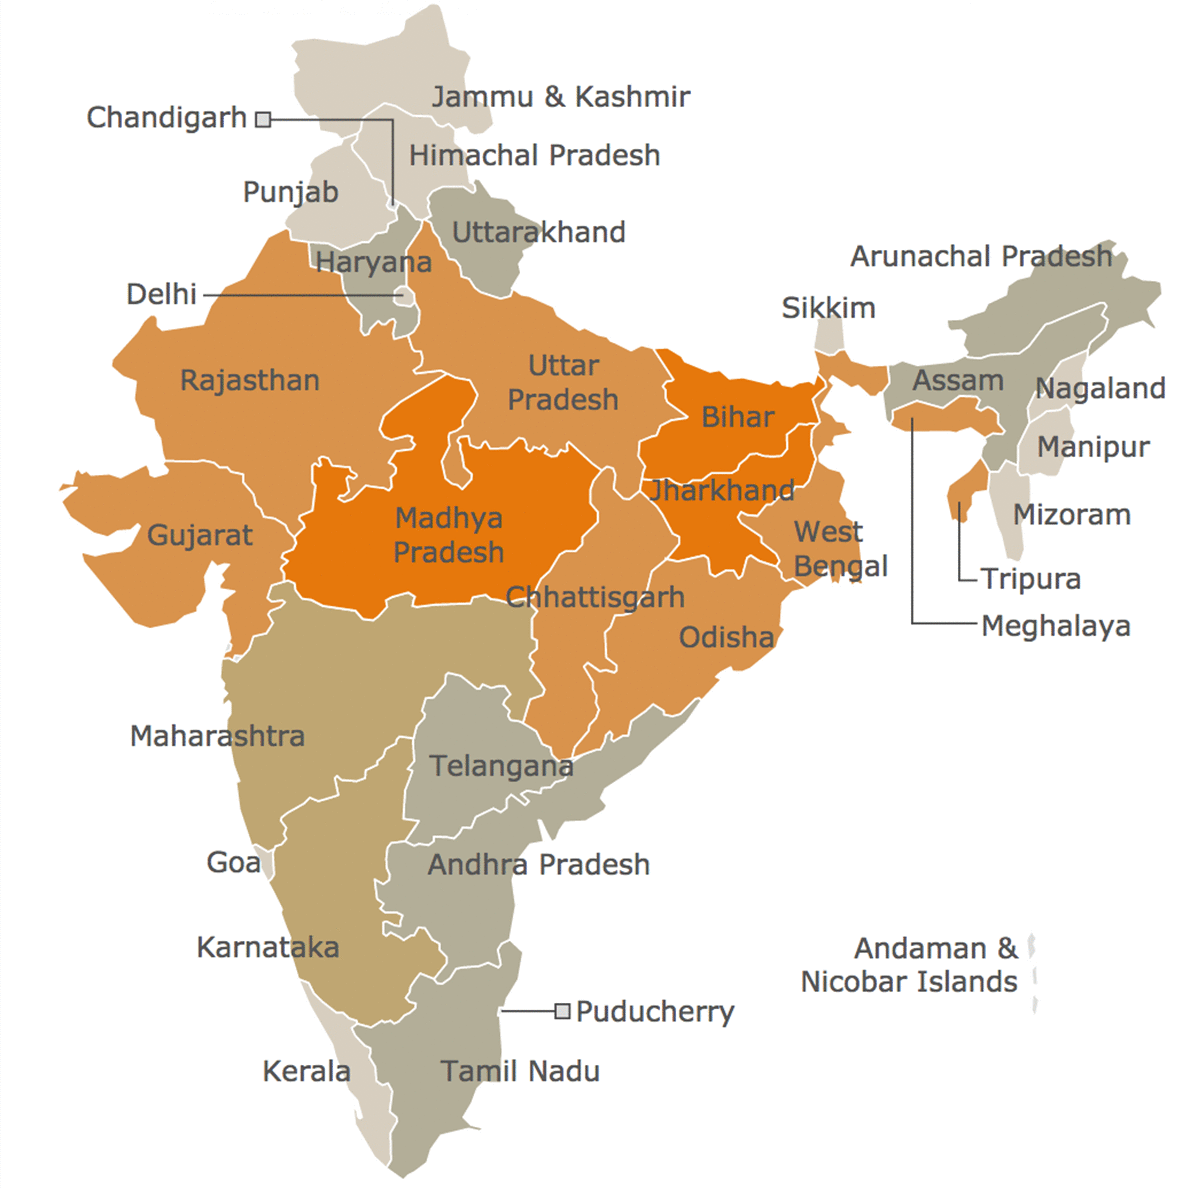 malnutrition in india 2017 pdf